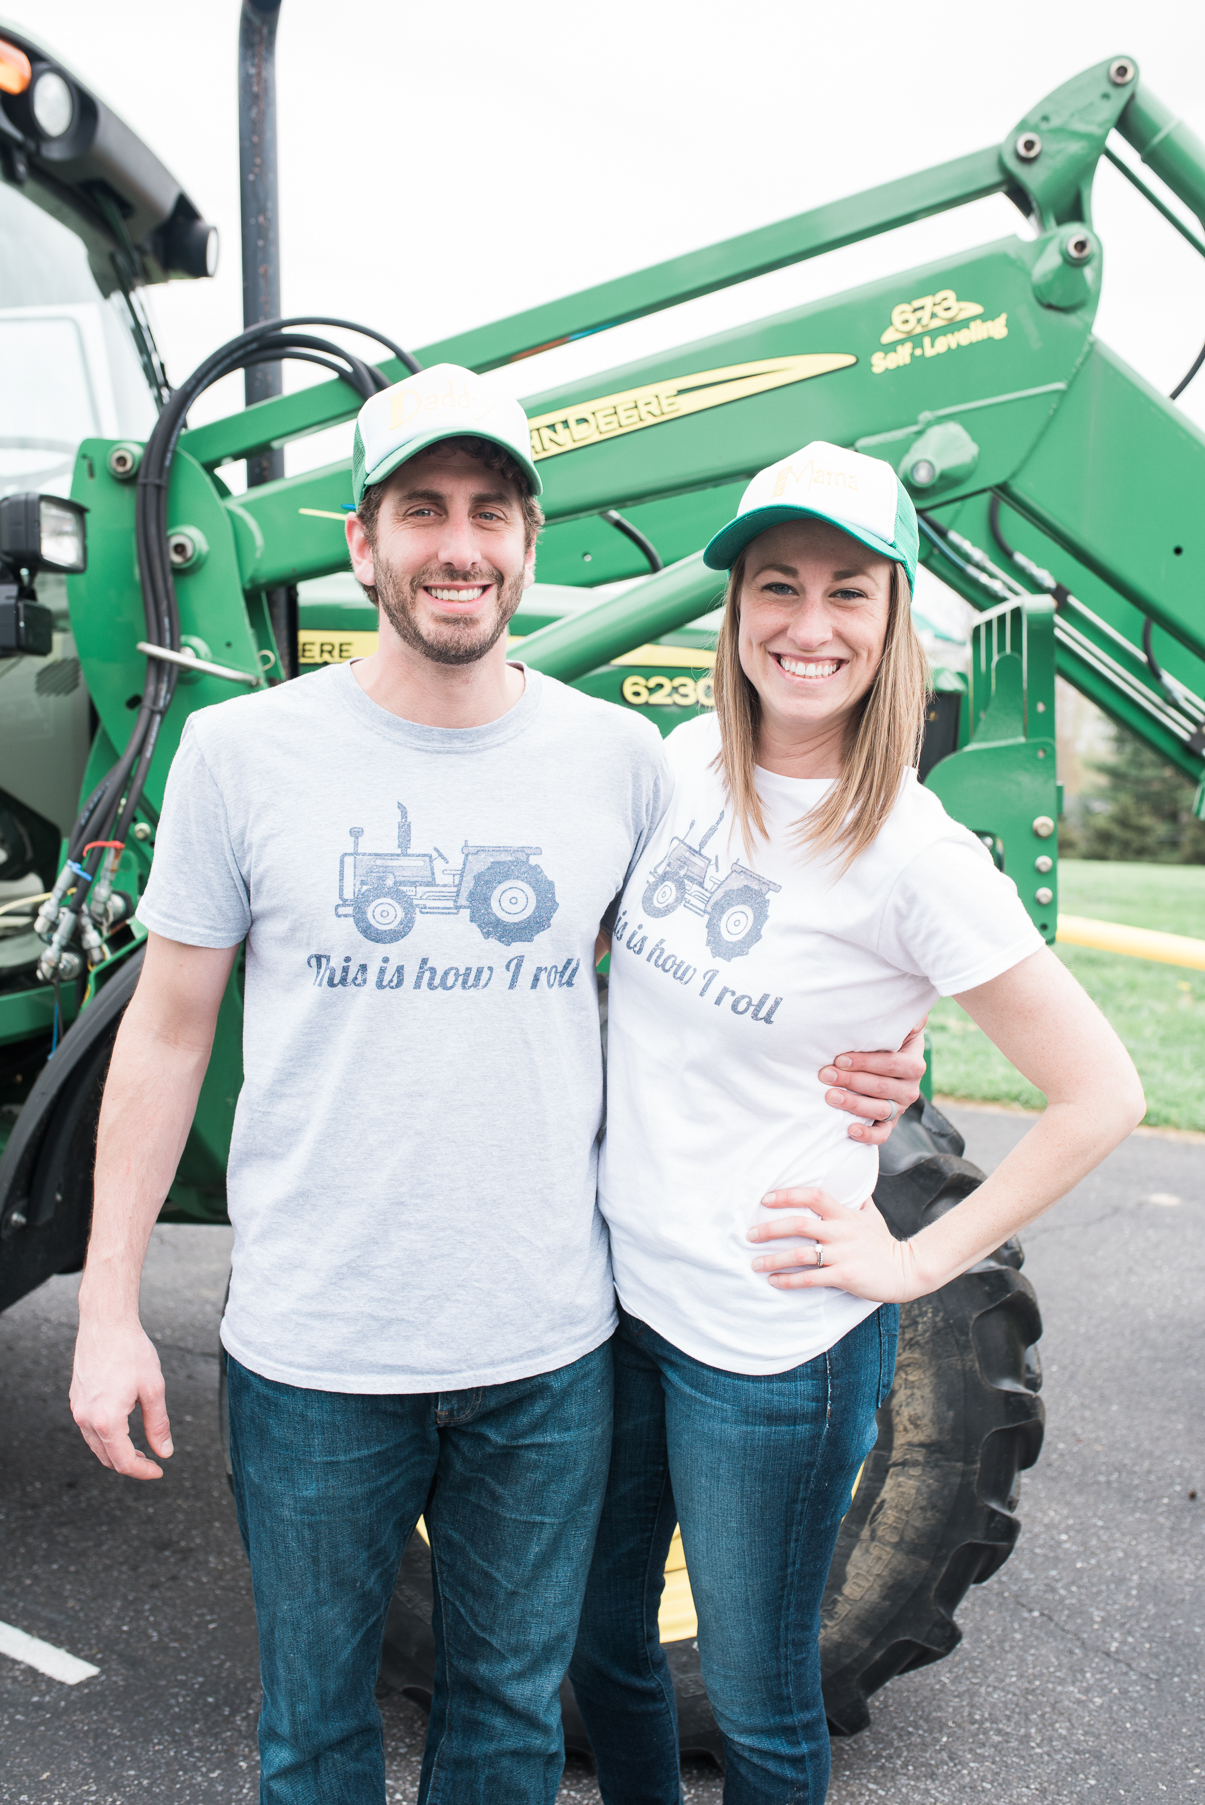 Baltimore-Maryland-harford county-photographer-family-lifestyle-tractor party-photos-by-breanna-kuhlmann-31.jpg